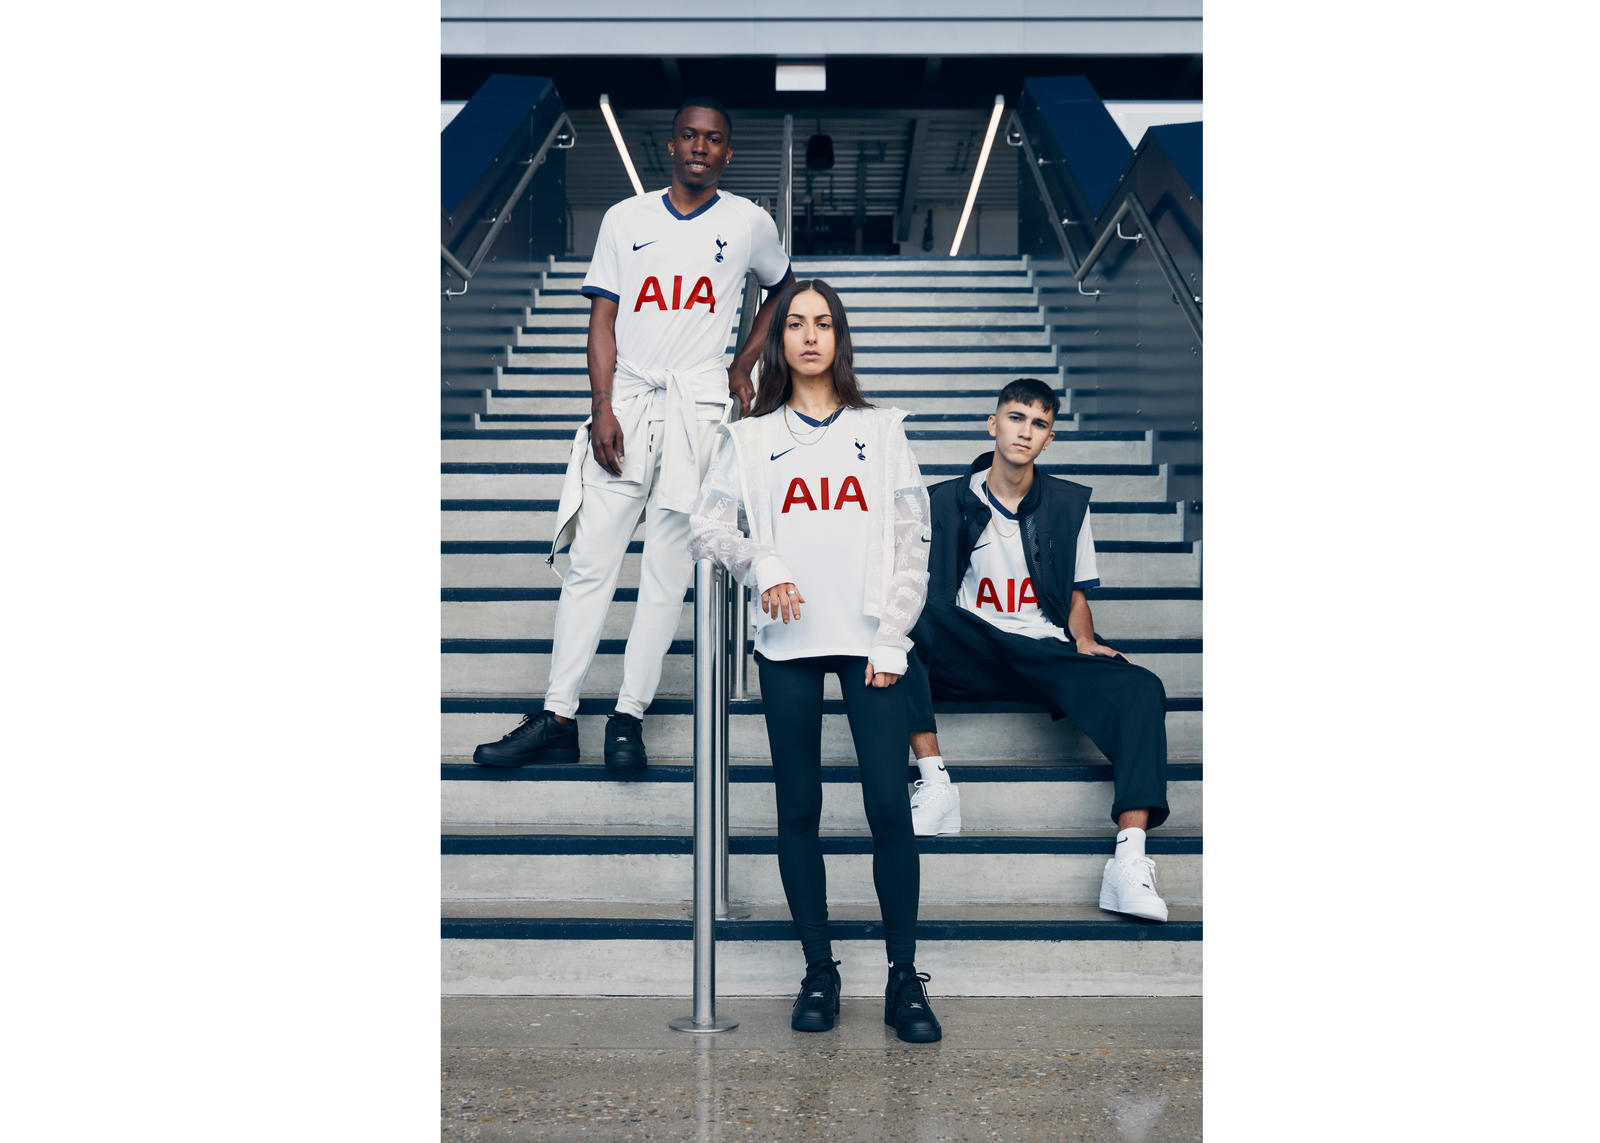 save off 88b3b b11d8 Tottenham Home and Away Kits 2019-20 - Nike News